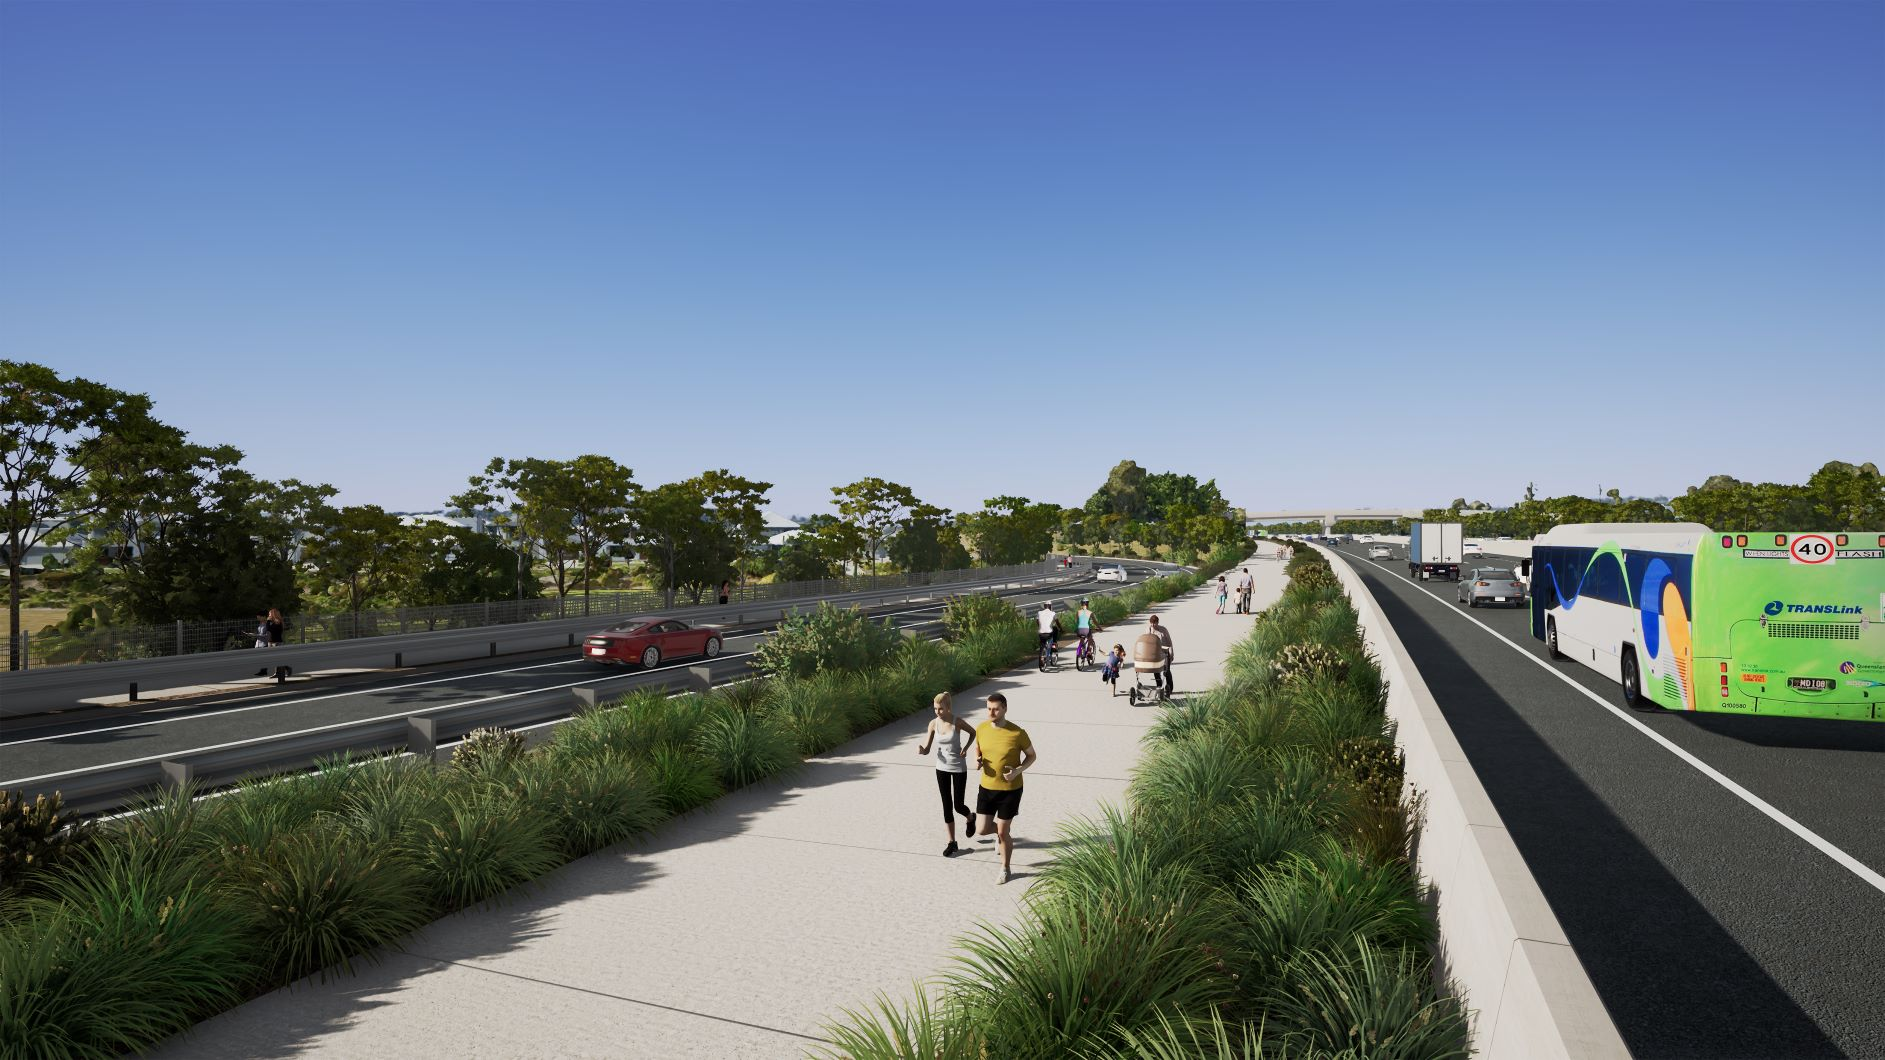 Concept of shared path for walking and bike riding at Helensvale, looking south